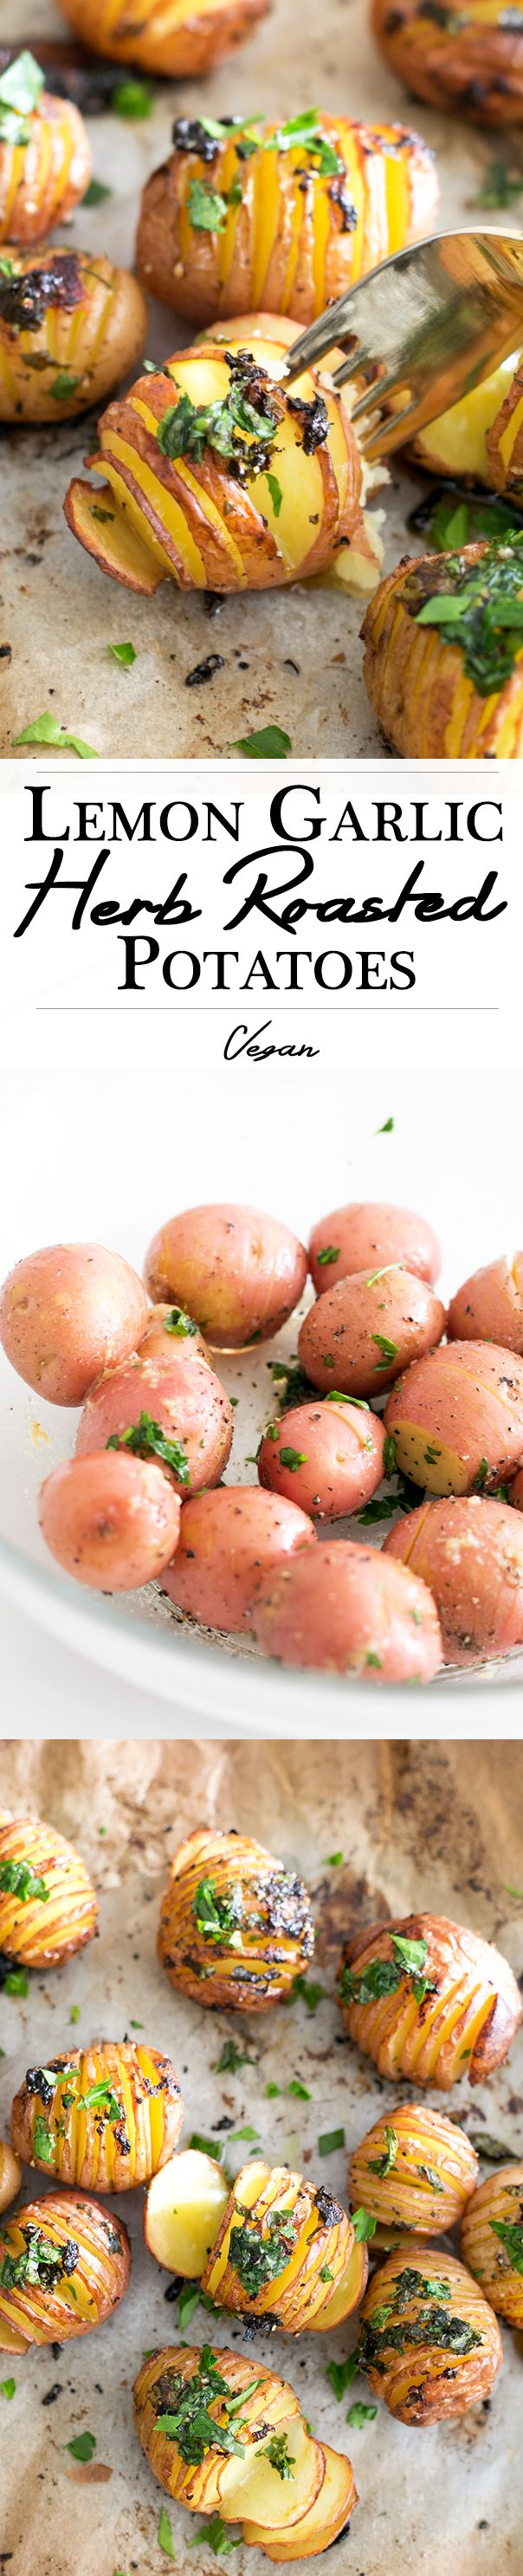 Lemon Garlic Herb Roated Potatoes - Delicious, Simple, Healthy and Packed With Flavor. #Vegan #Recipes #Simple #Healthy